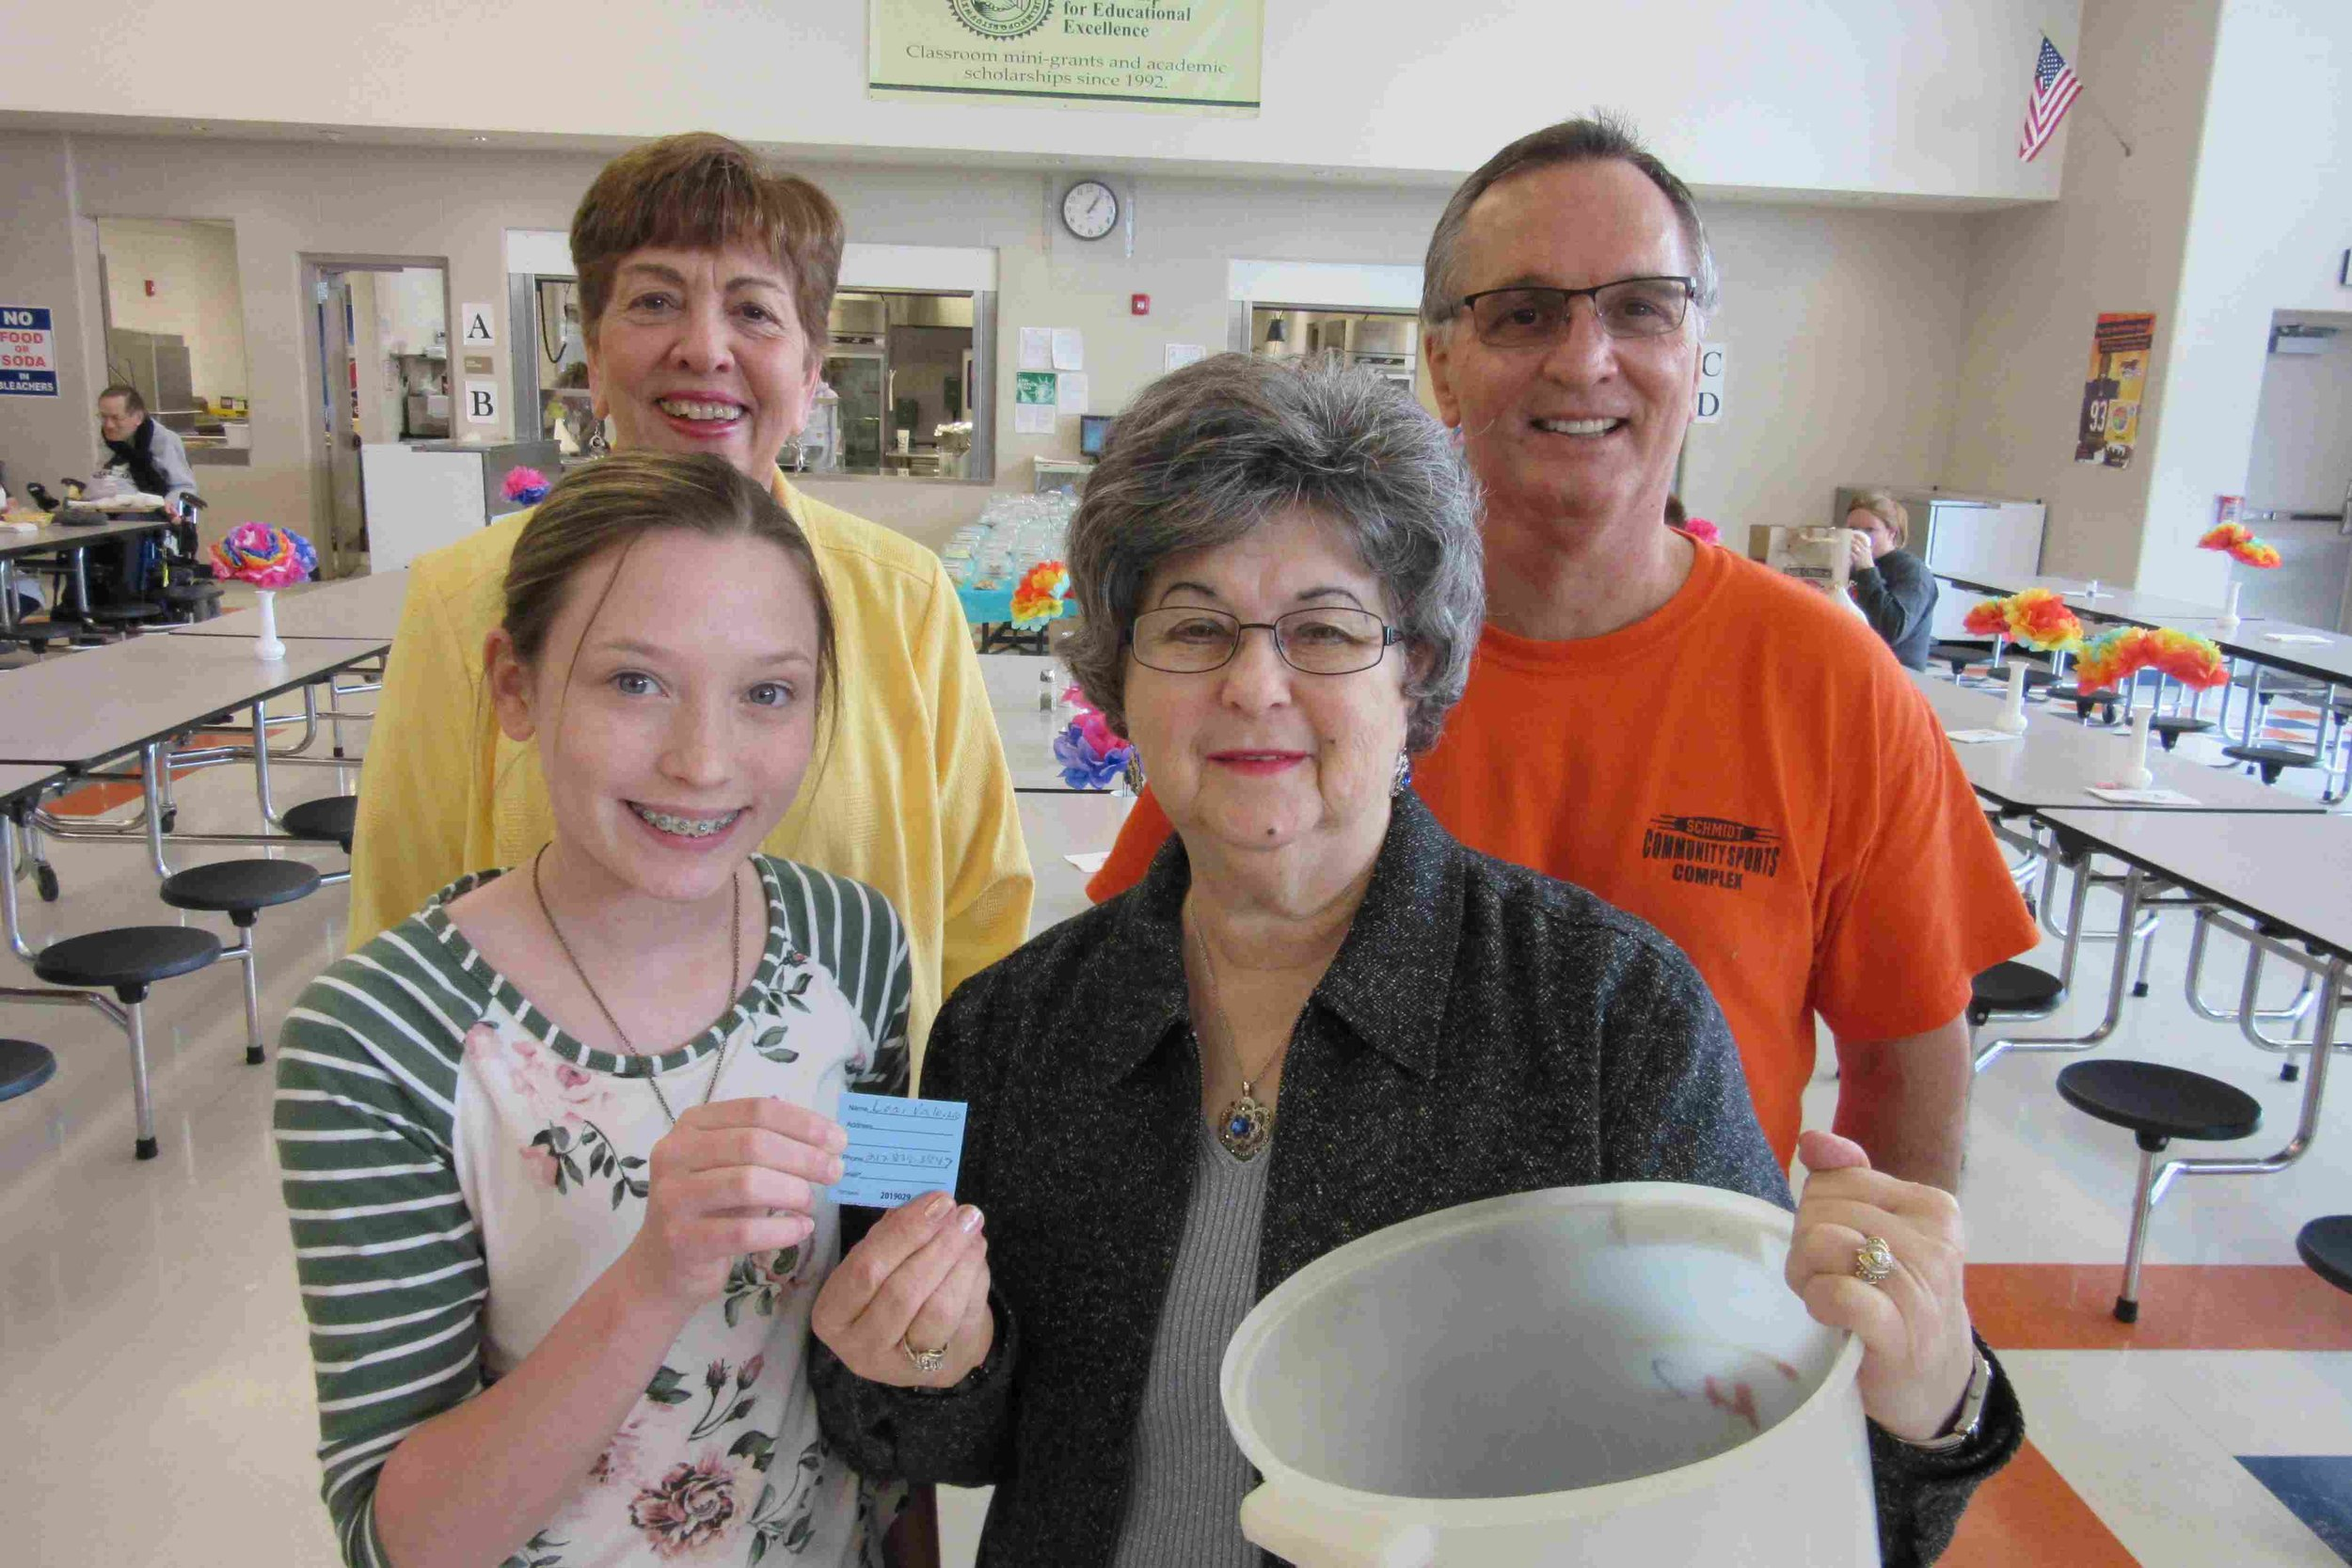 Shelbee Geisler and Rose Tebbe hold Lori Valerio's winning ticket. Carole Scheller and Don Throne, both Partnership directors look on.